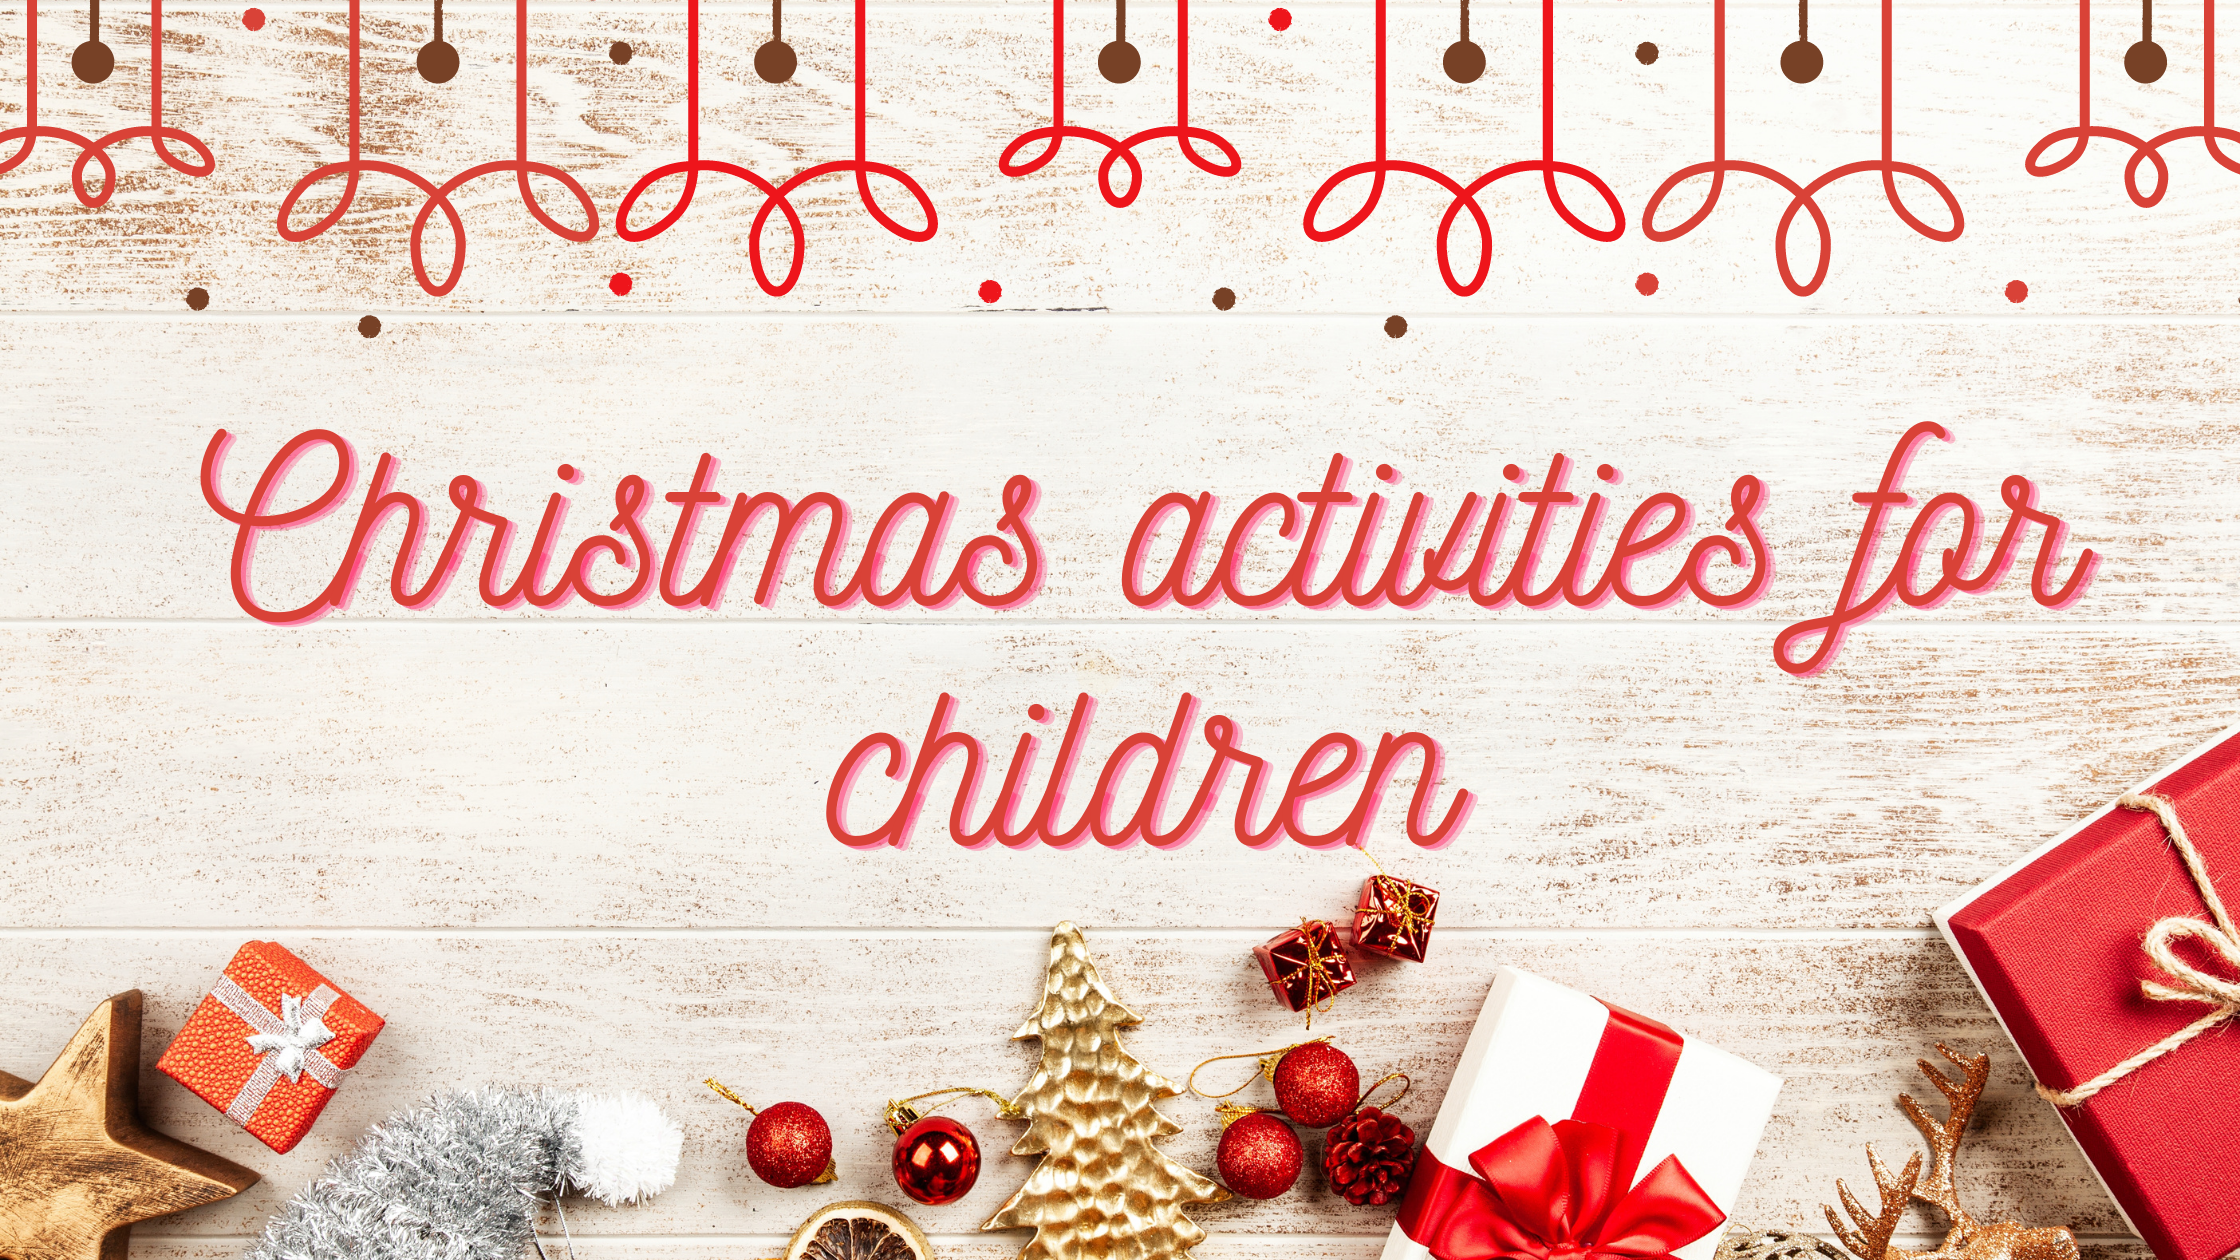 10 Easy and entertaining Christmas activities for children